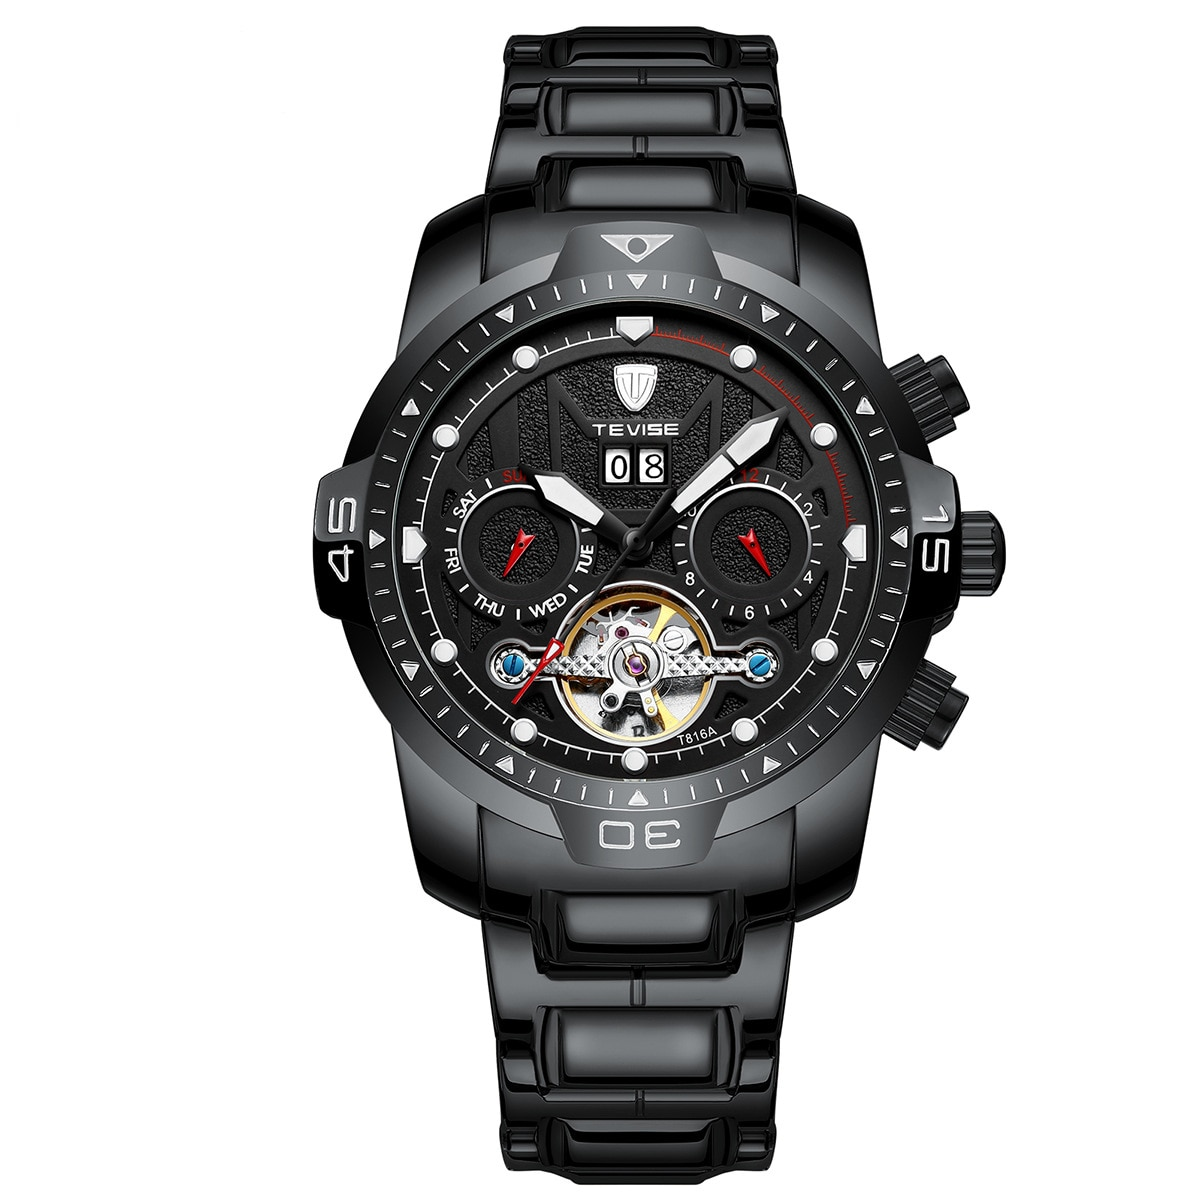 Fashion High-end Limited Multifunctional Mechanical Watch European and American Waterproof Watch Student Sports Watch Men's enlarge